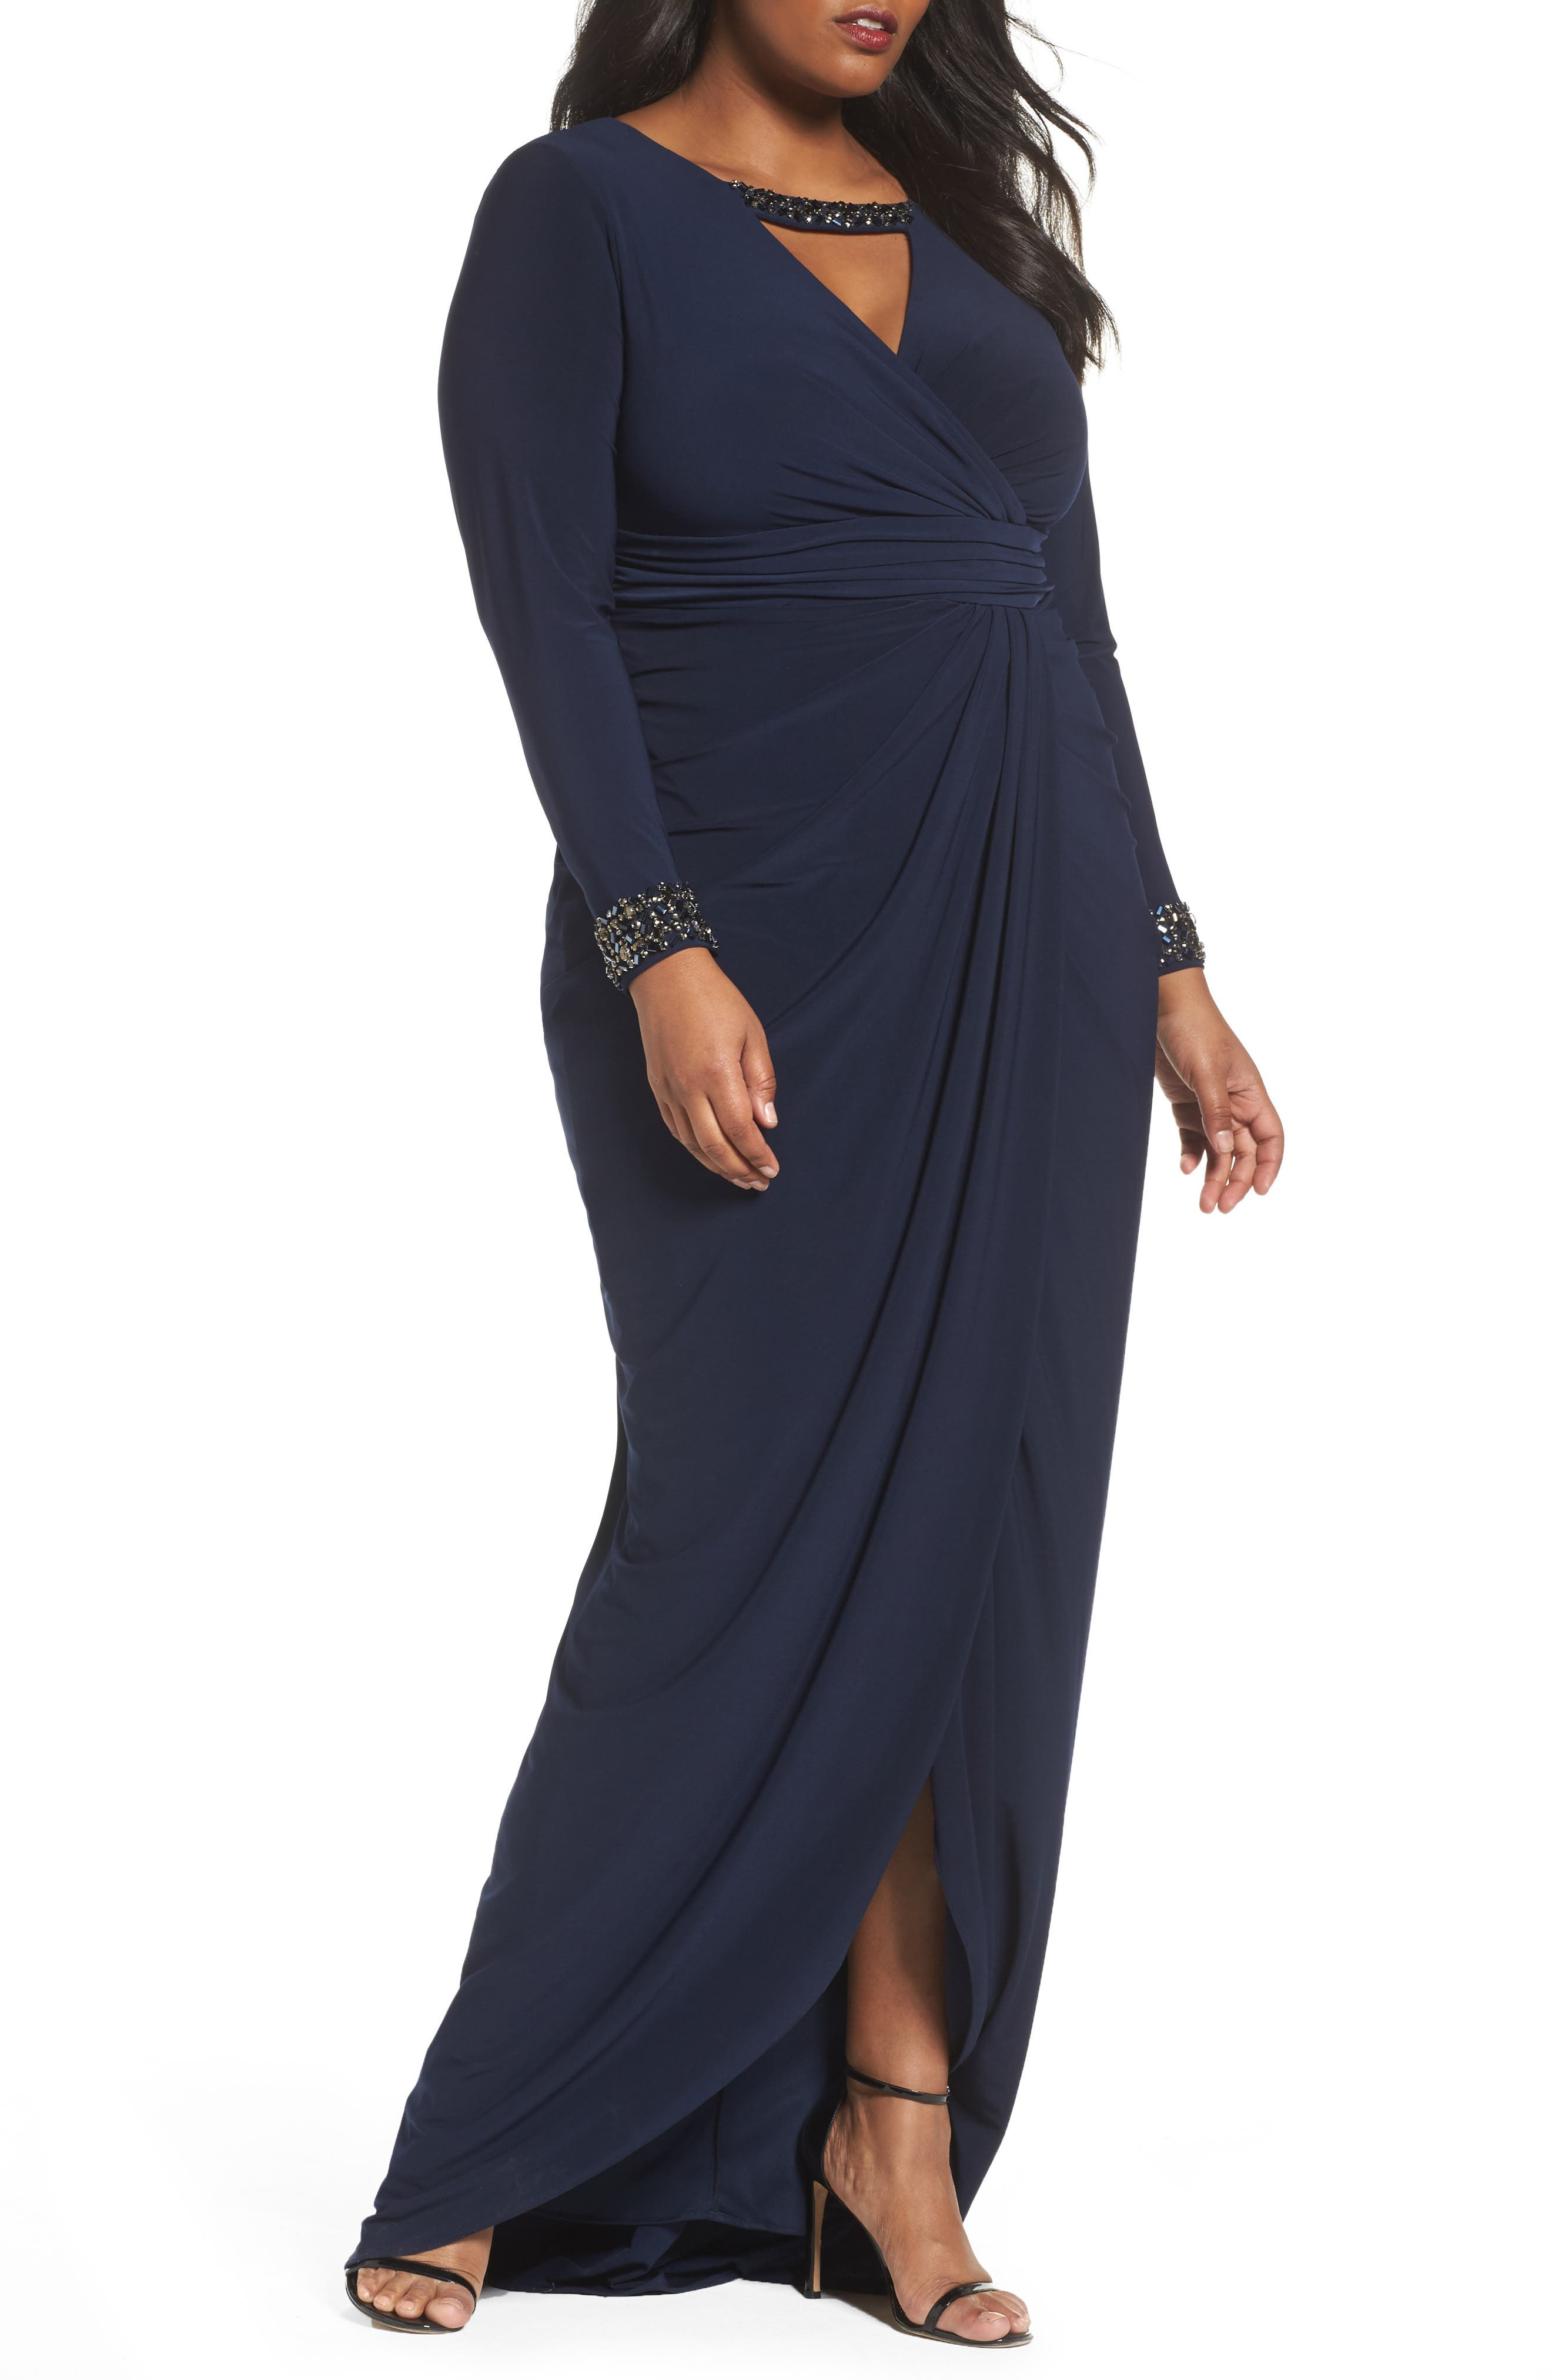 Alternate Image 1 Selected - Adrianna Papell Wrap Front Jersey Gown (Plus Size)